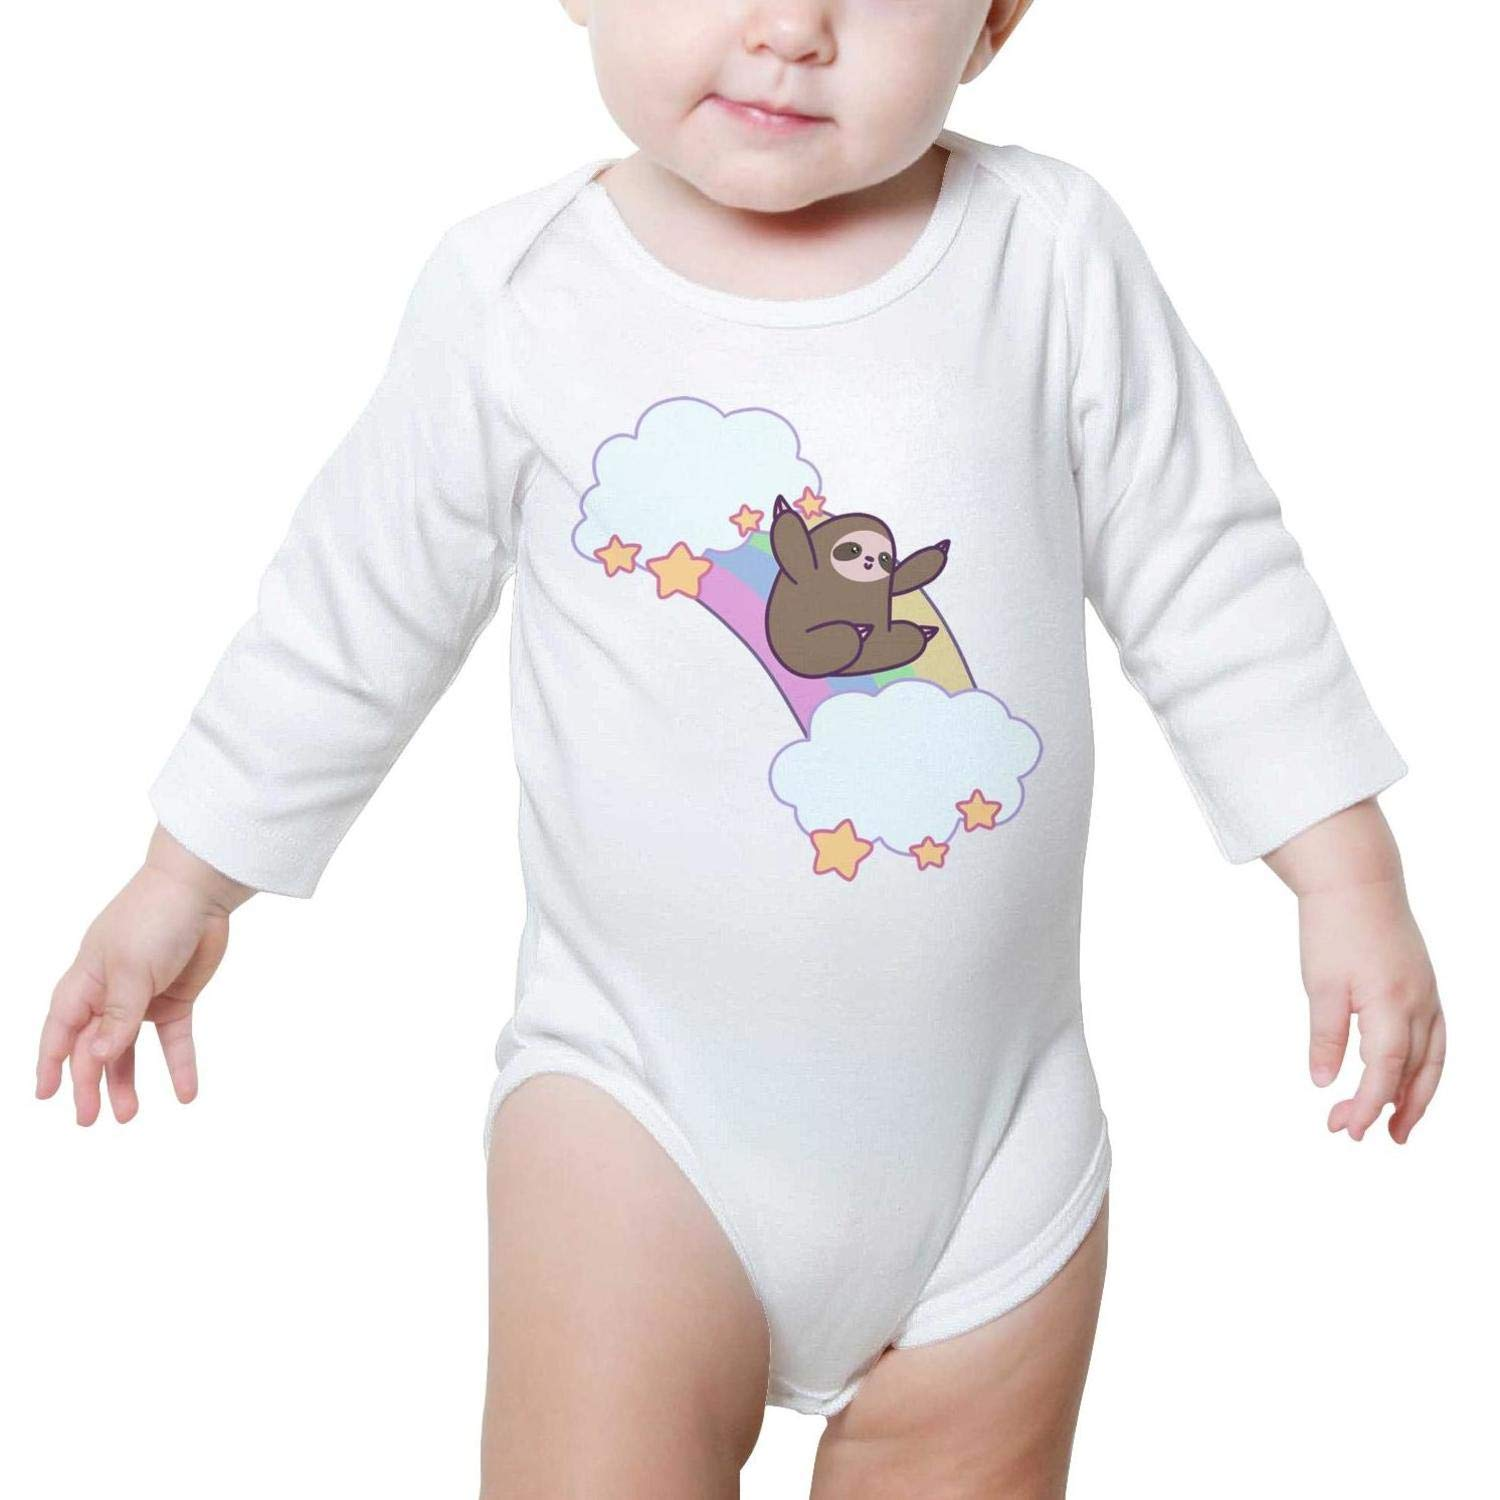 6a088d18c Amazon.com: Rainbow Cloud Sloth Baby Onesie Clothing Long Sleeve Natural  Organic Cotton Outdoor: Clothing